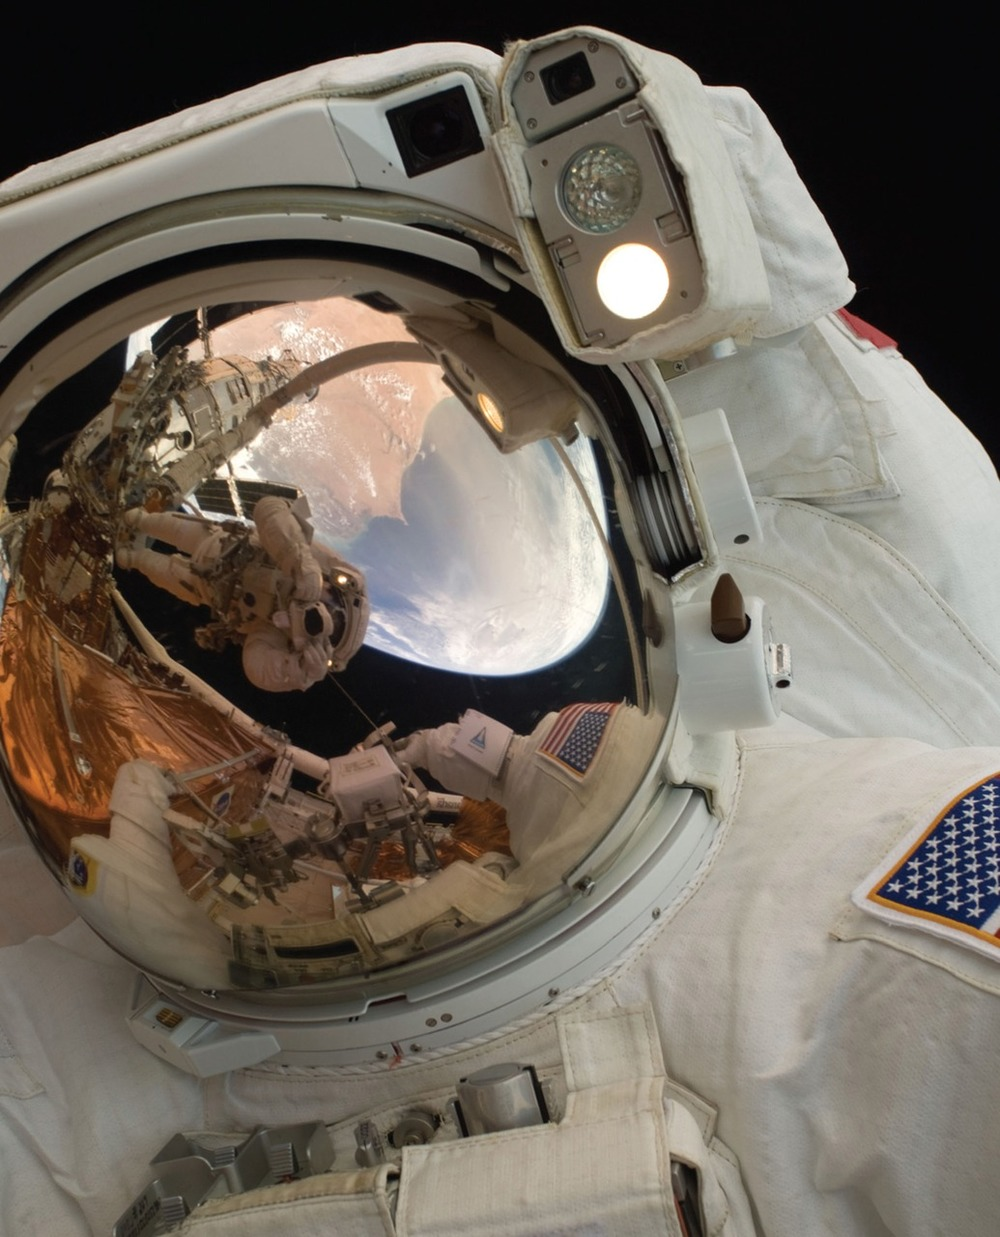 A close-up of Astronaut John Grunsfeld shows the reflection of Astronaut Andrew Feustel, perched on the robotic arm and taking the photo. The pair teamed together on three of the five spacewalks during Servicing Mission 4 in May 2009.   The Hubble Space Telescope is a project of international cooperation between NASA and the European Space Agency. NASA's Goddard Space Flight Center manages the telescope. The Space Telescope Science Institute conducts Hubble science operations.   Goddard is responsible for HST project management, including mission and science operations, servicing missions, and all associated development activities.   To learn more about the Hubble Space Telescope go here:   www.nasa.gov/mission_pages/hubble/main/index.html      Some absolutely mesmerising images from the Hubble Space Station on  NASA's Goddard Flight Centre's Flickrstream .